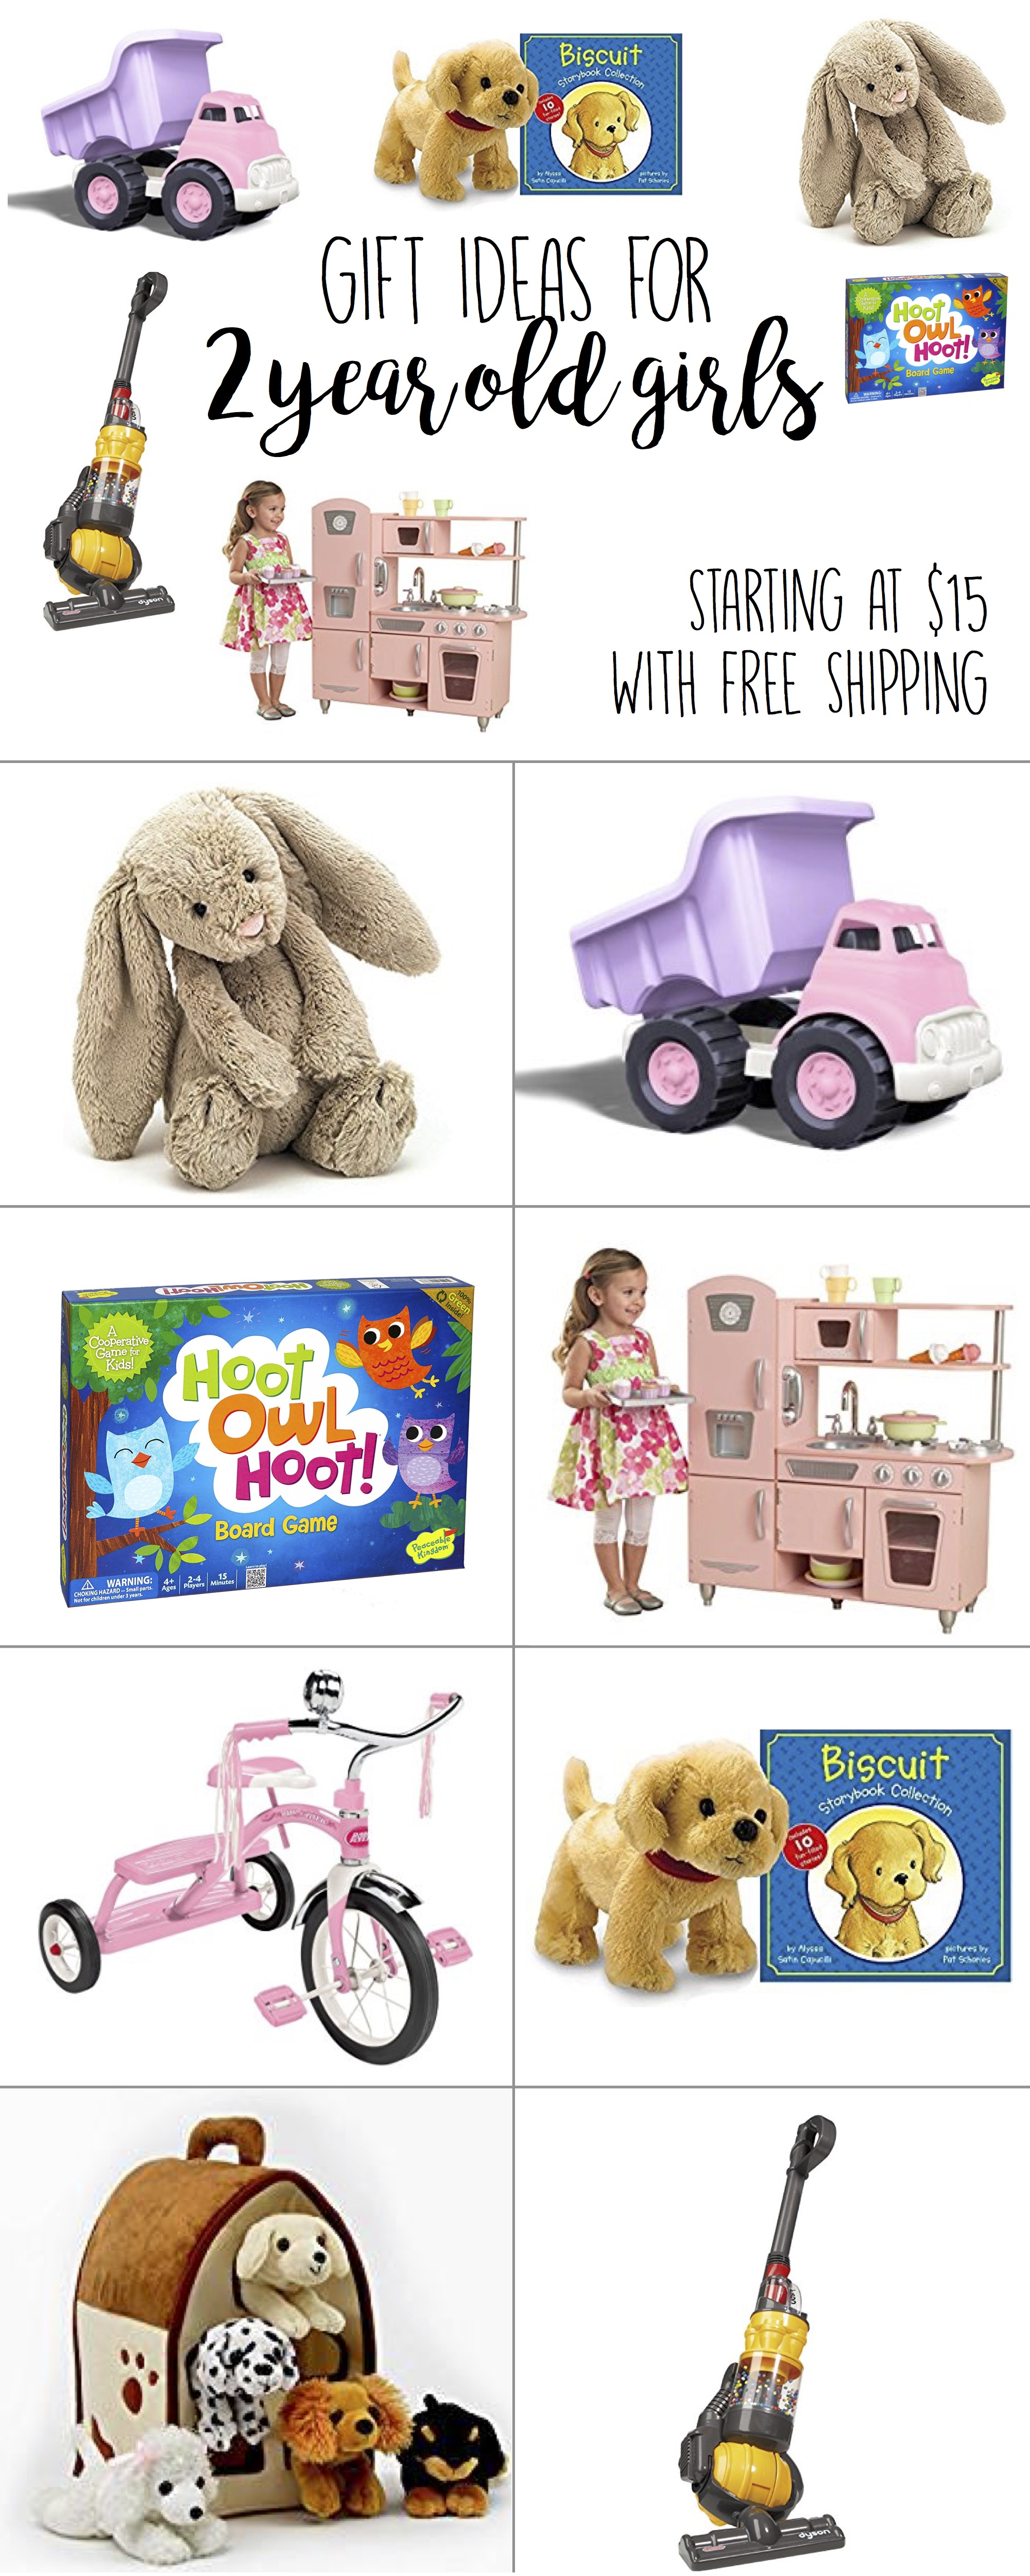 Gifts for 2 yr old girl Gift Ideas for Toddler Girls Gifts for 2  sc 1 st  Gem Snatch & Gifts for 2 Year Old Girls - Gem Snatch